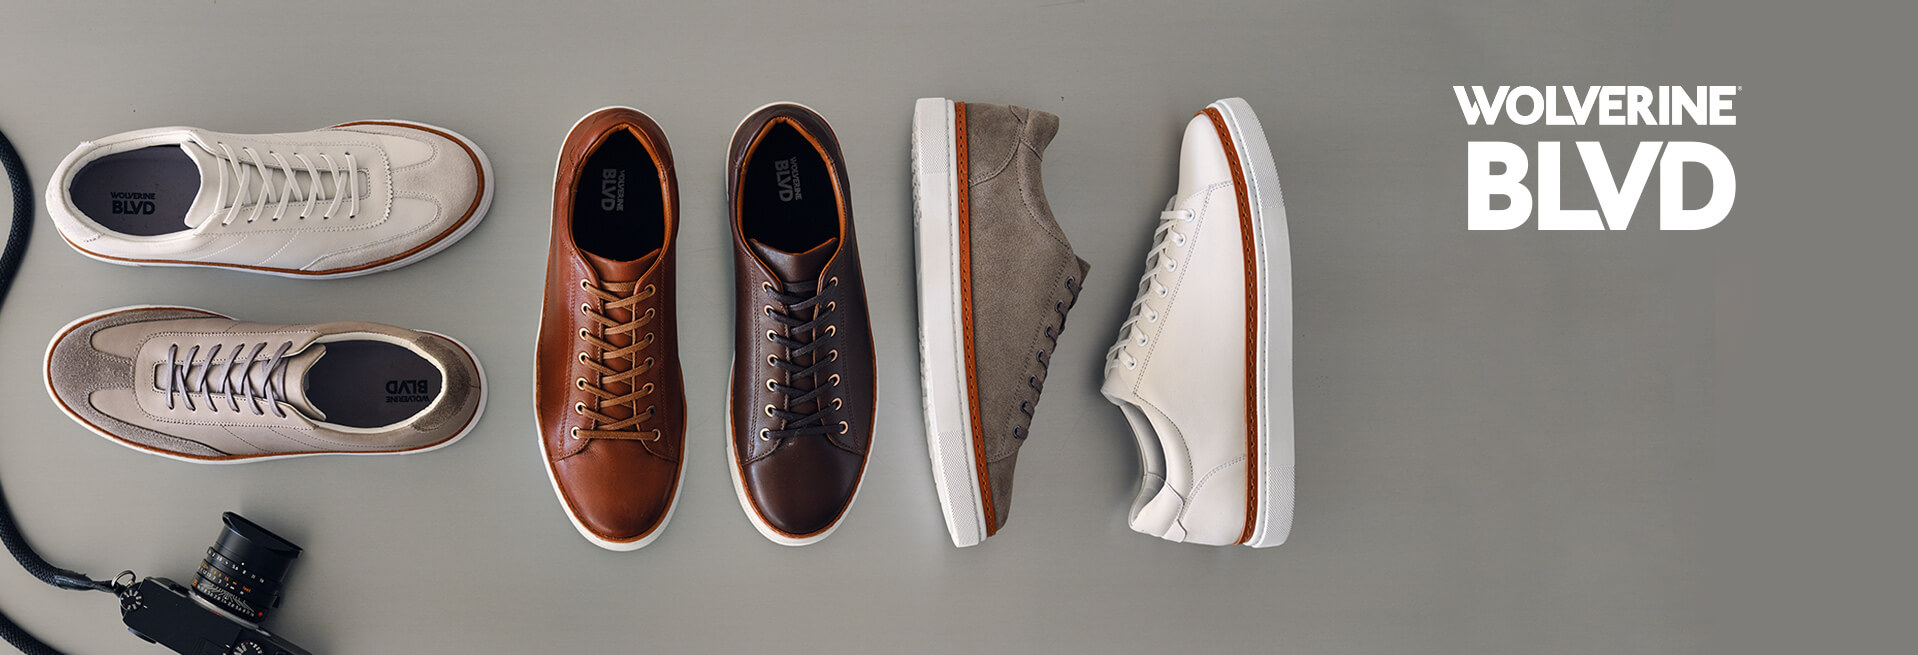 BLVD sneakers in a variety of styles and colors.